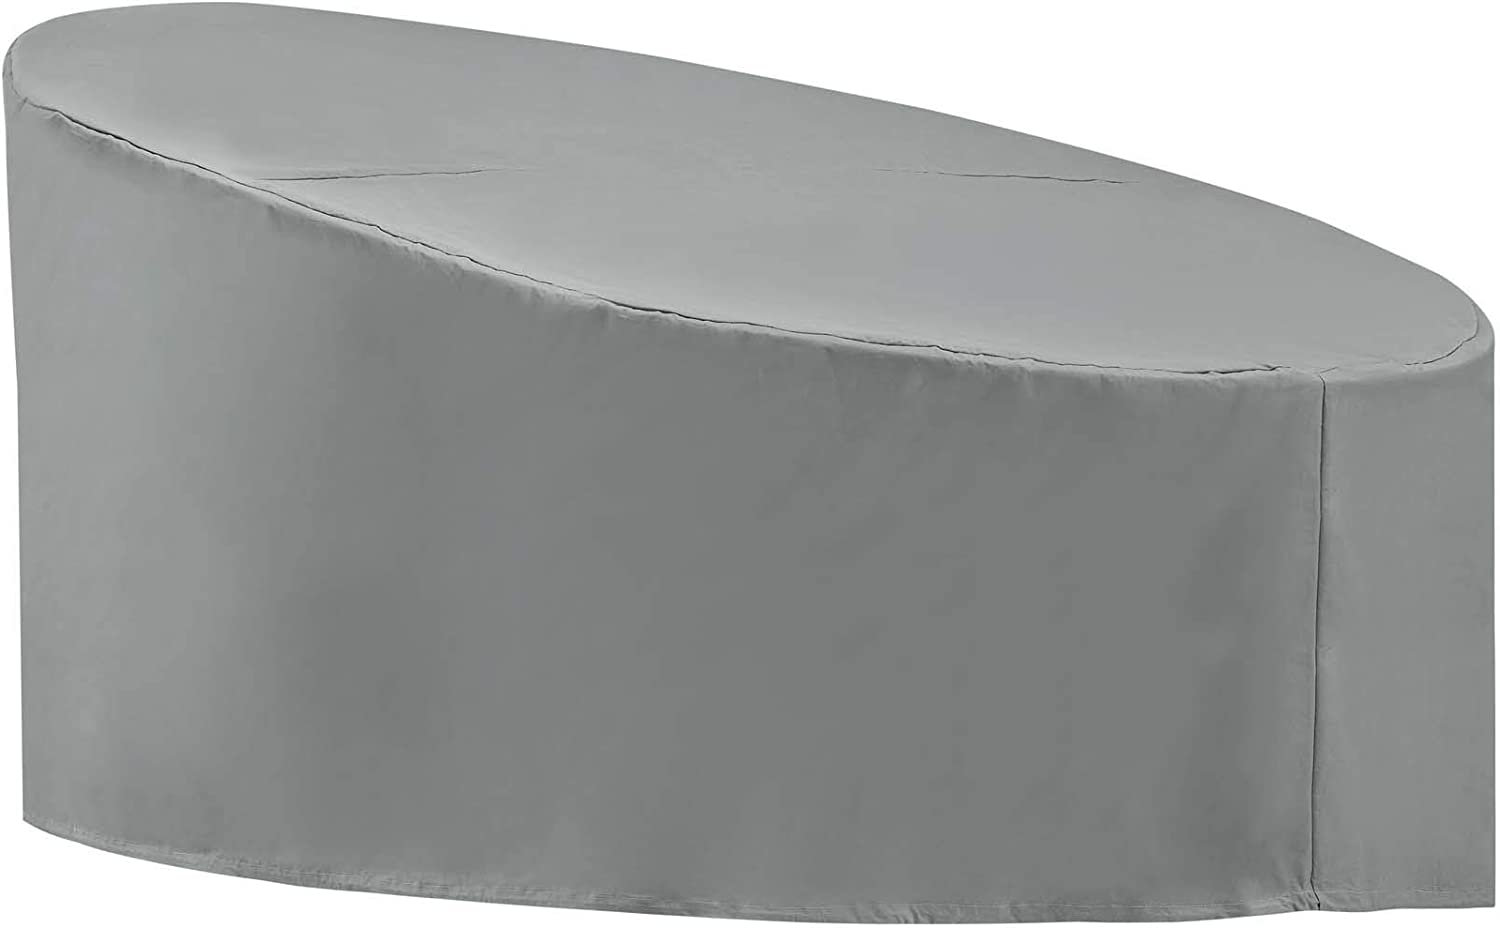 Modway EEI-3132-GRY Immerse Siesta and Convene Canopy Daybed, Cover, Gray